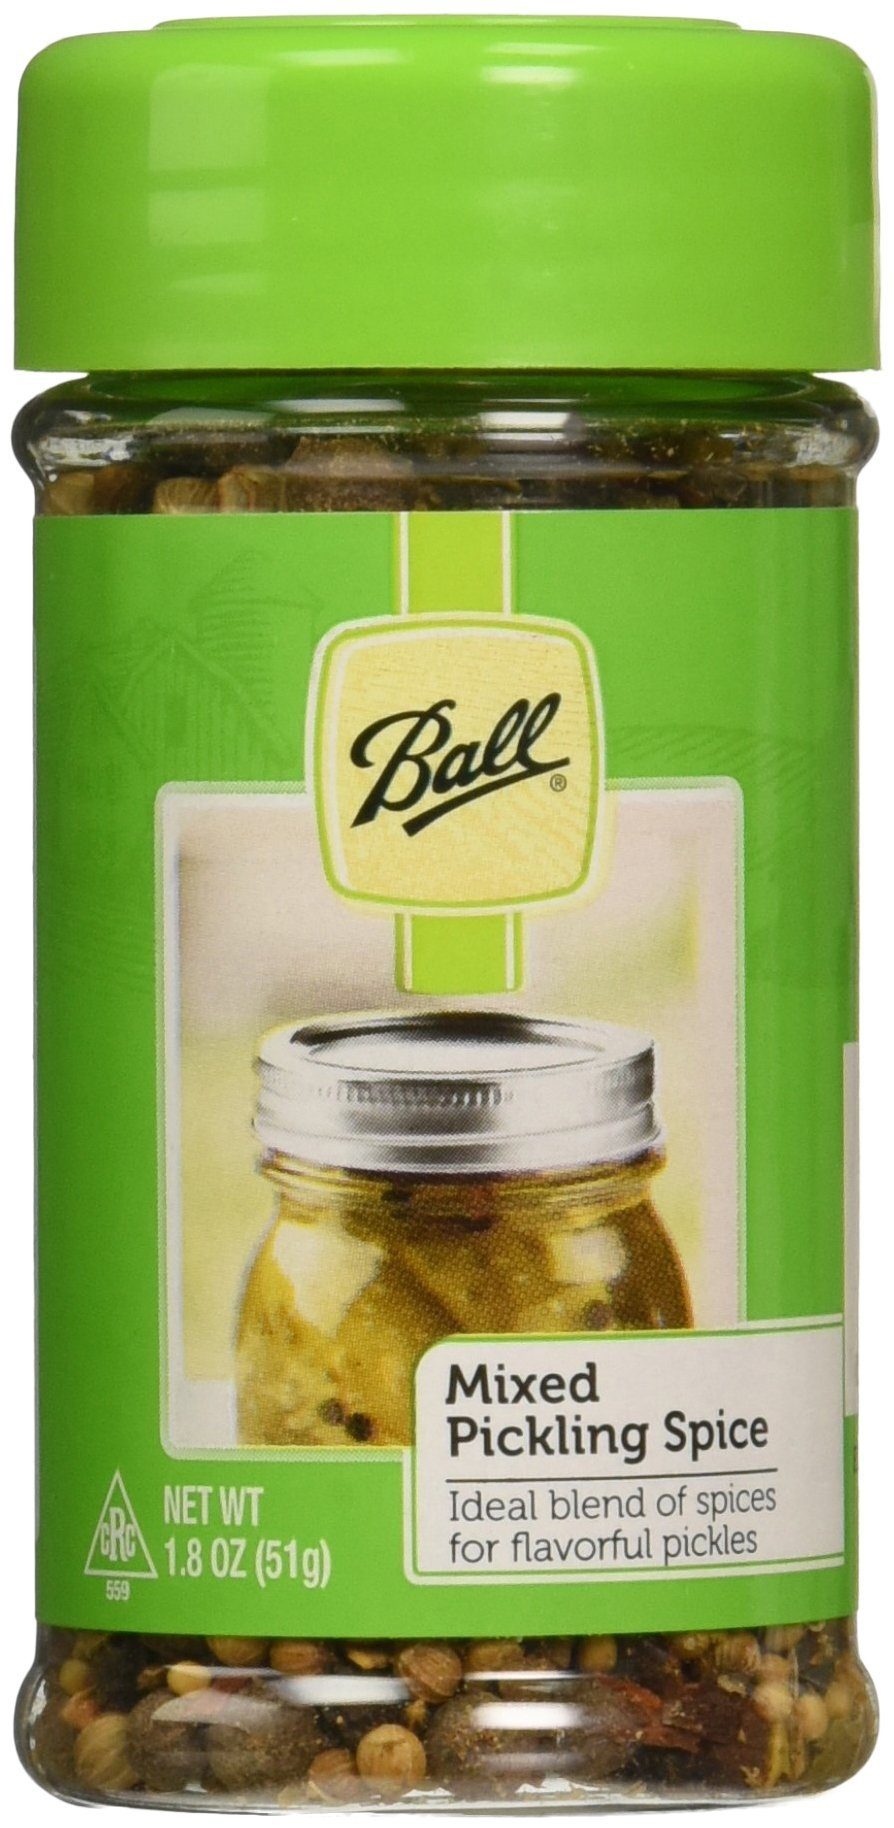 ball mixed pickling spice instructions